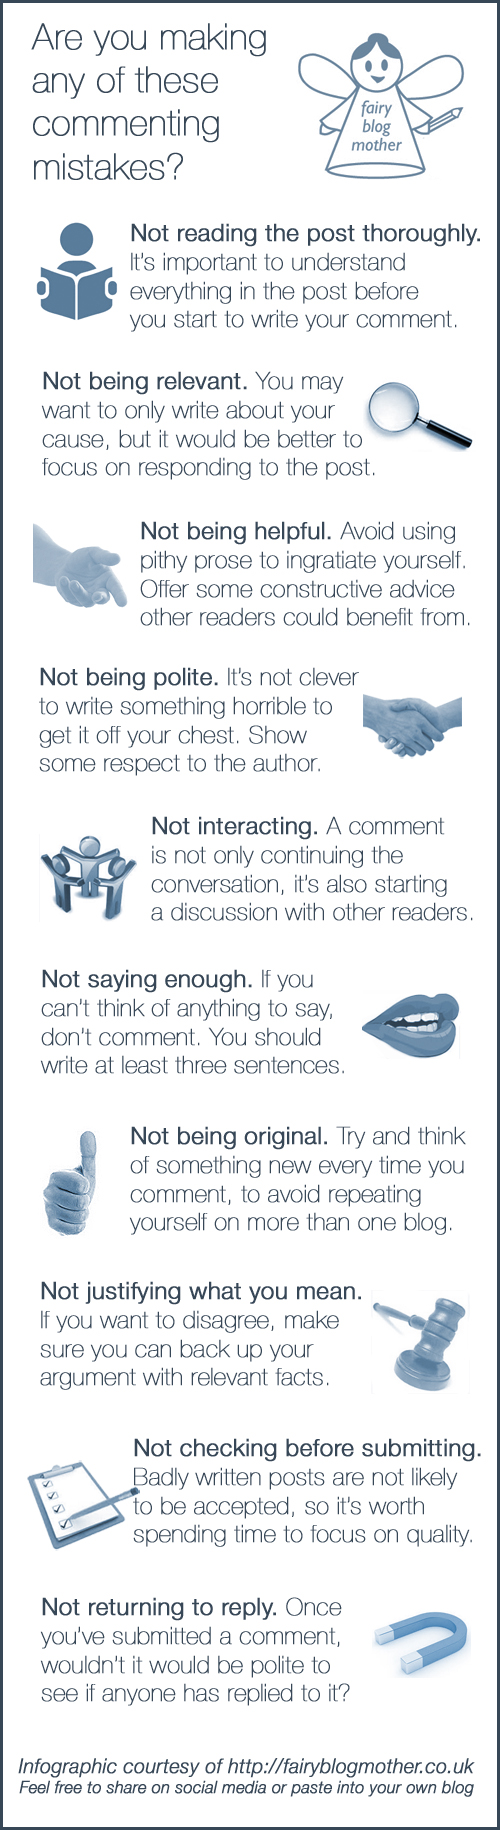 Are you guilty of making any of these commenting mistakes?